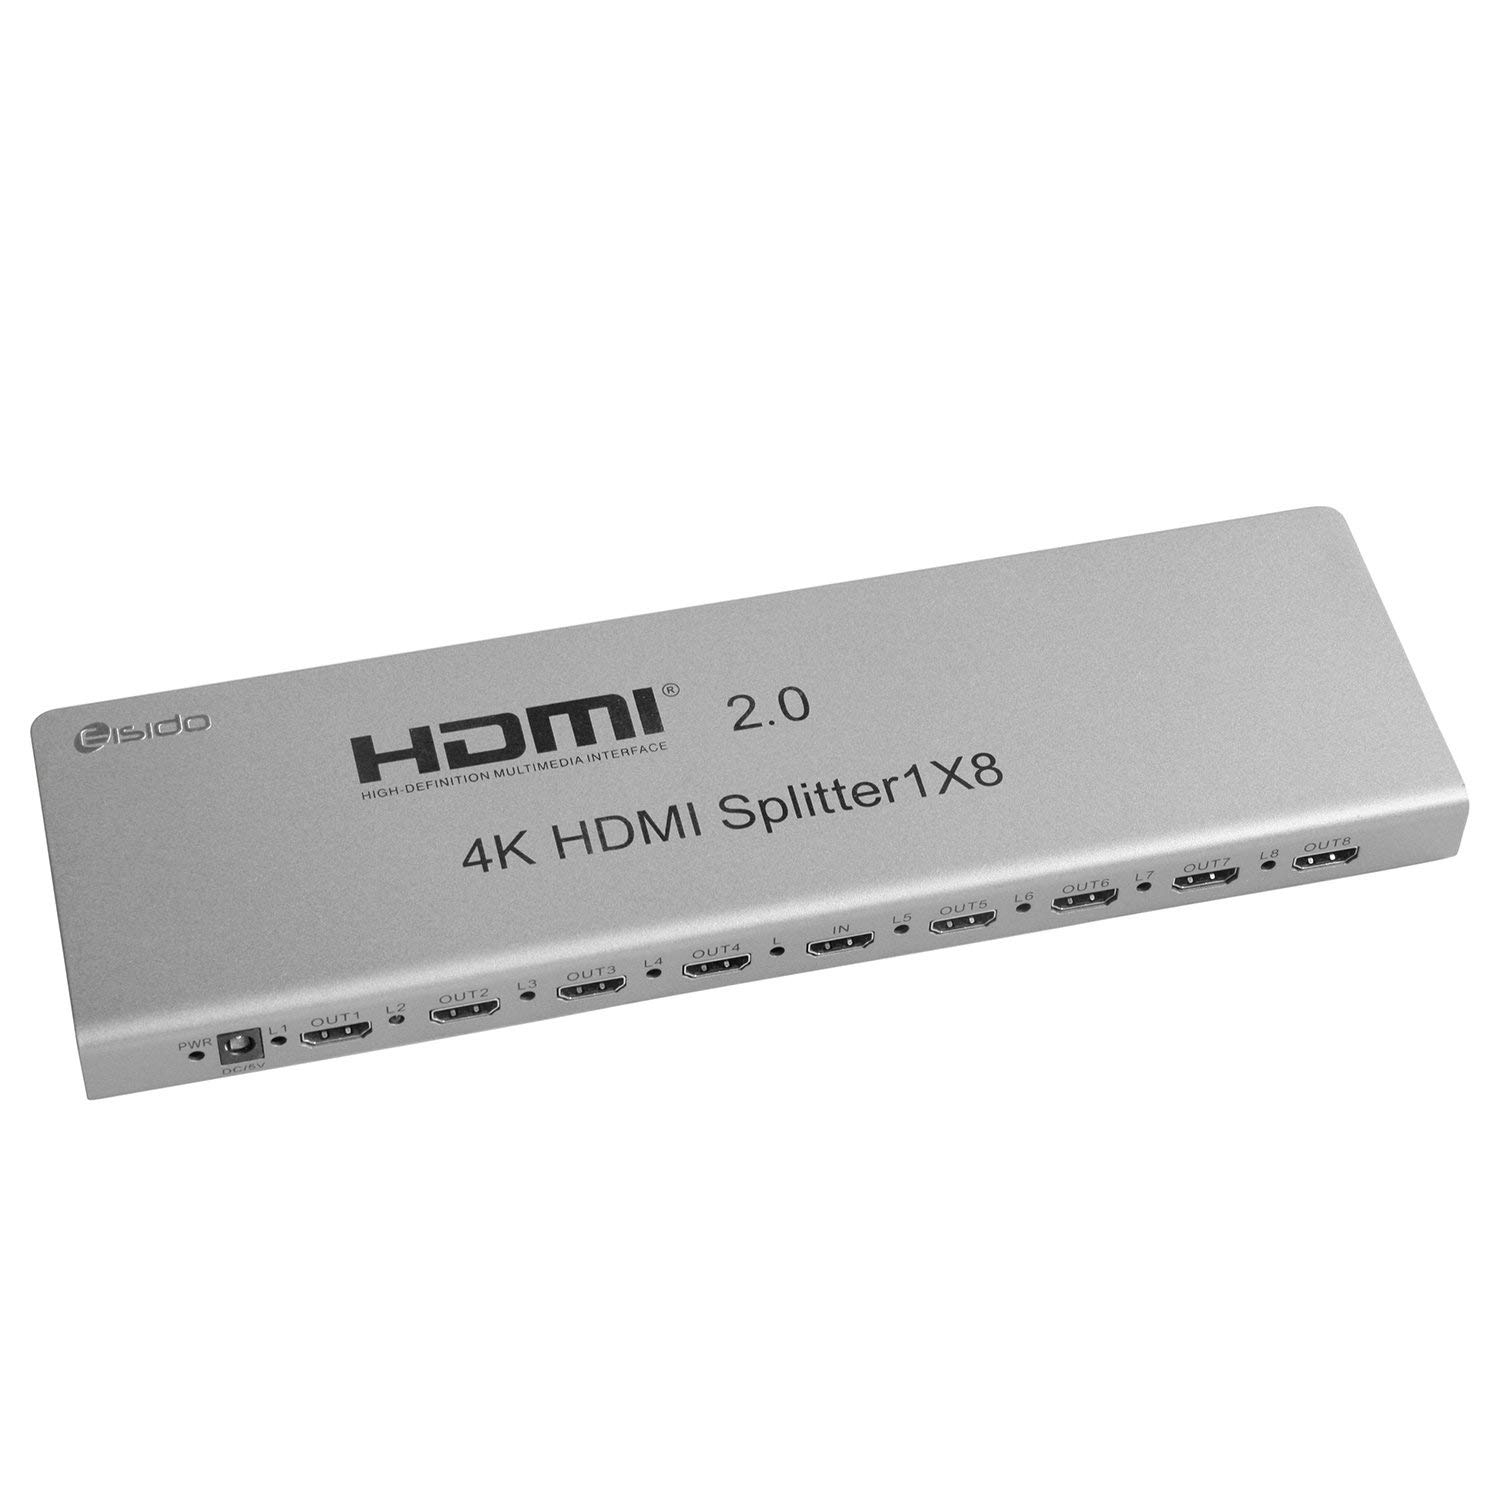 Eisido 4K/60Hz 3D HDMI2.0 Splitter 1 In 8 Out with IR Extension EDID Management RS232 for Blu-ray DVD Player Ultra HD 4K TV PS4 Laptop etc